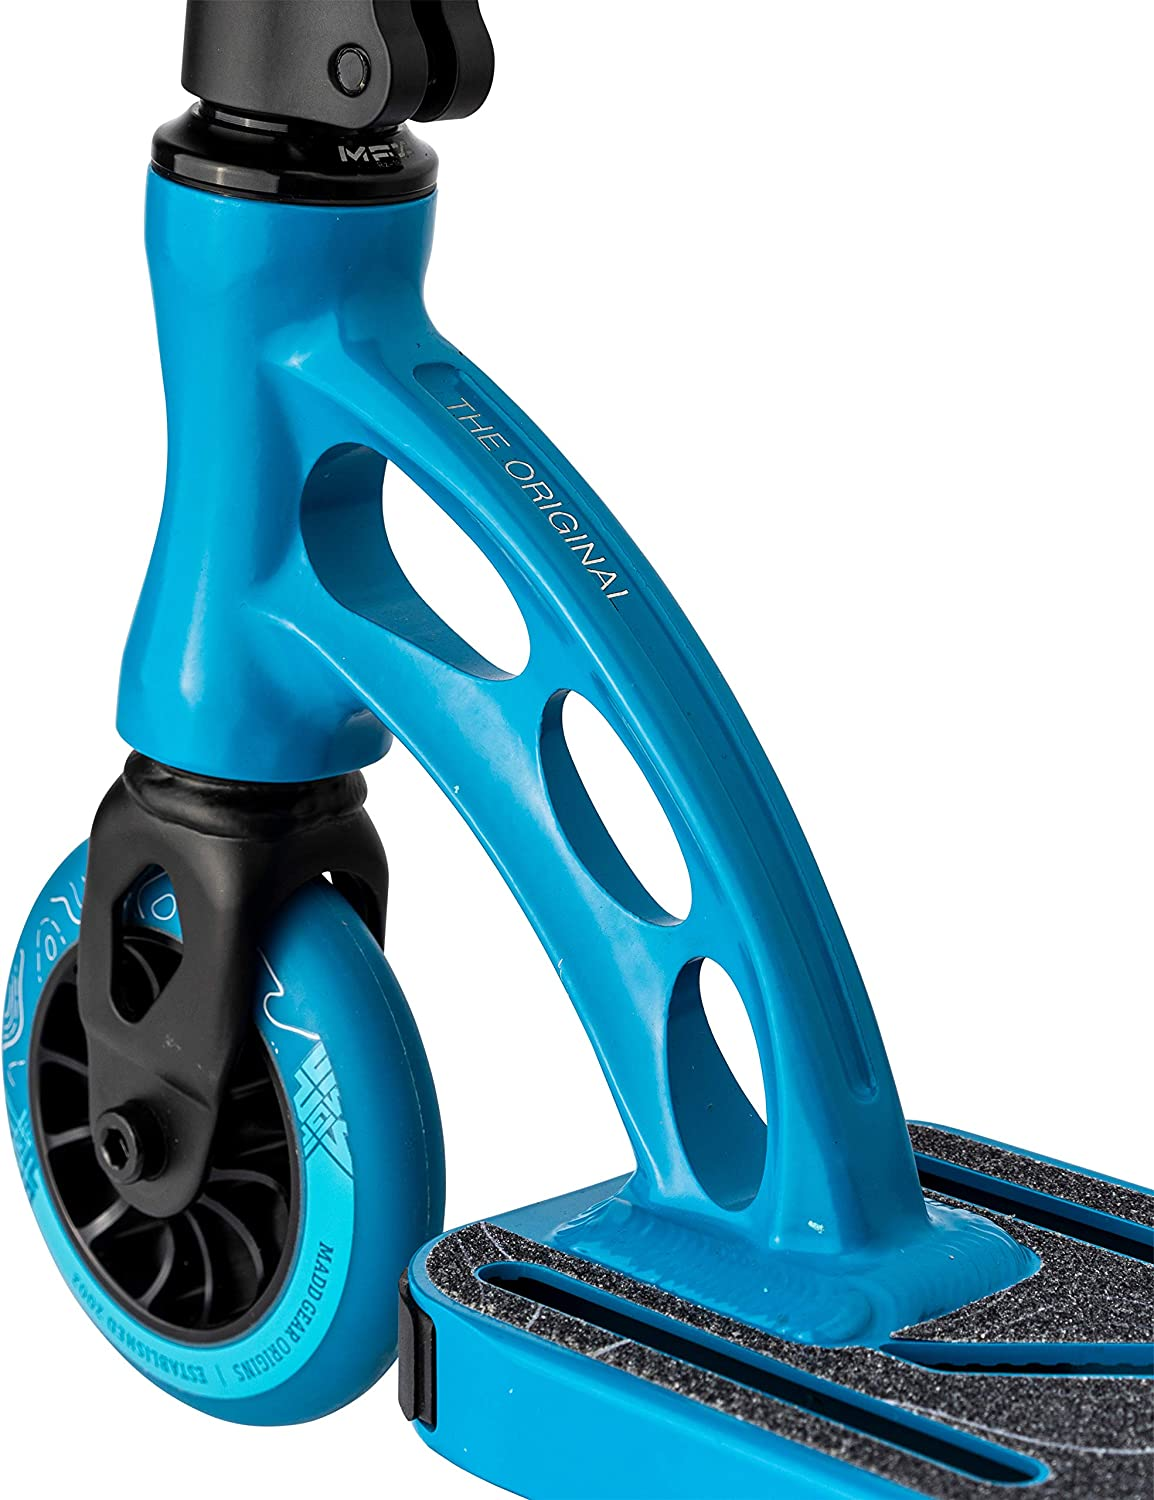 Details about  /MGP Madd Gear MGX Kick Stunt Scooter Shredder S1 Roller Freestyle Stuntscooter